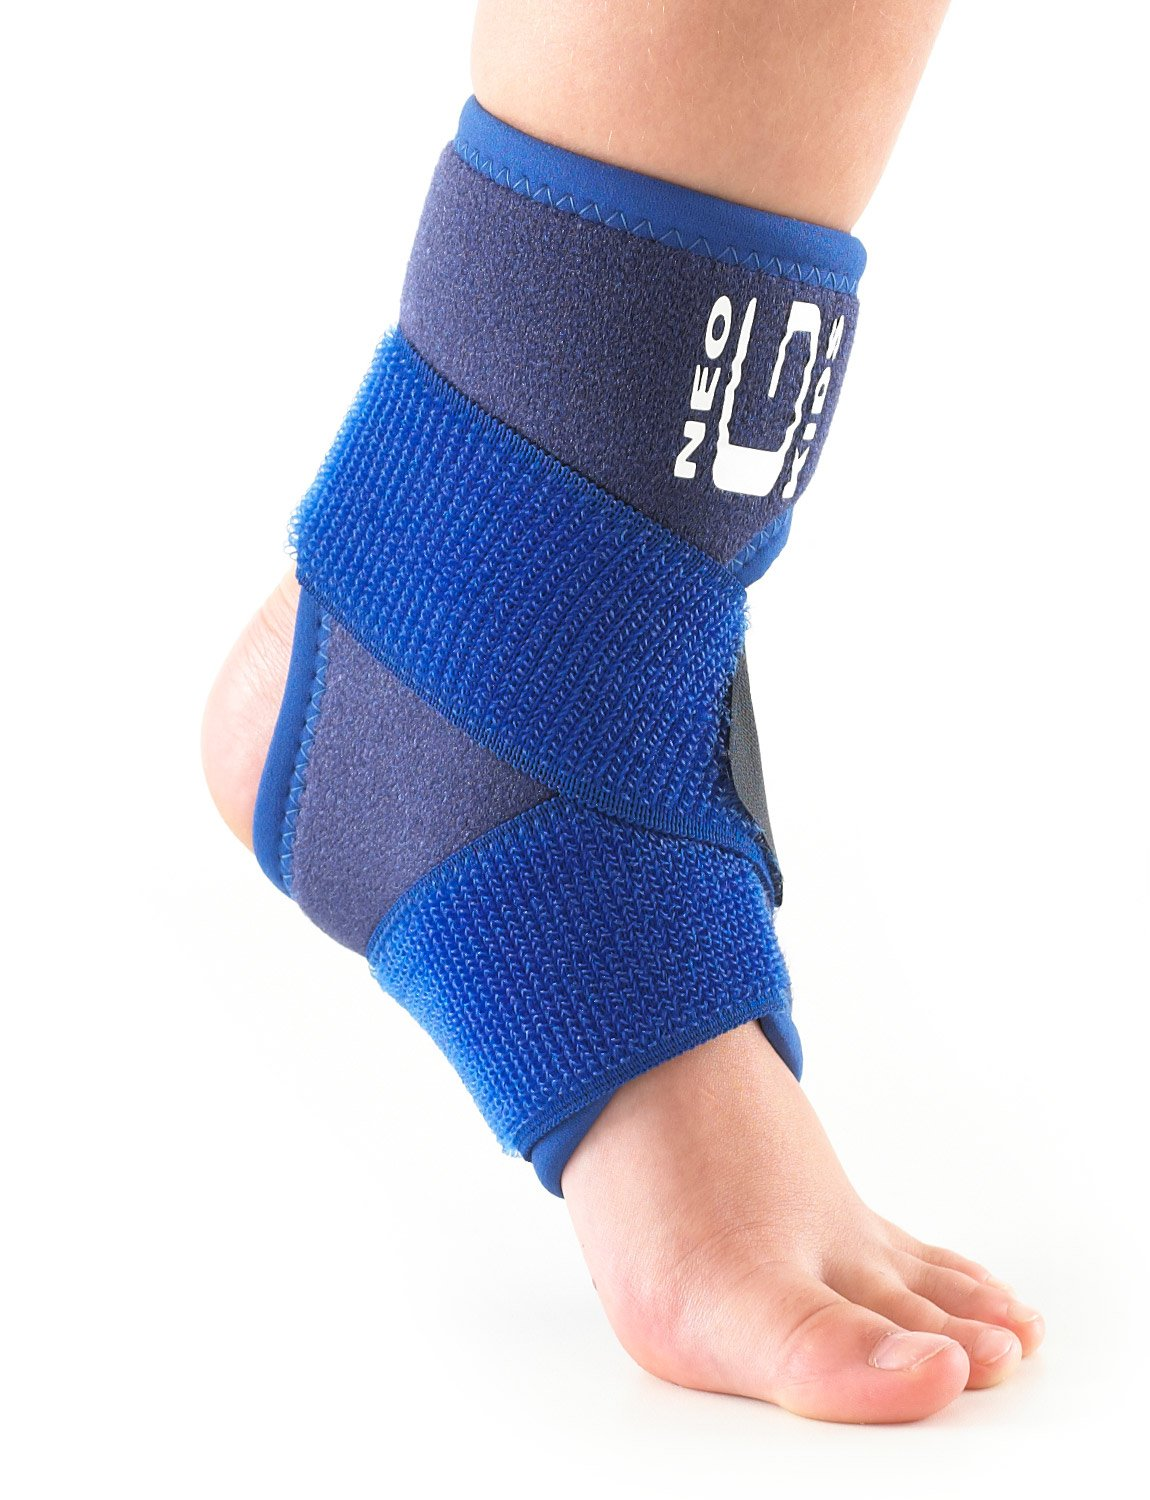 Neo G Ankle Brace for Kids - Support for Juvenile Arthritis Relief, Joint Pain, Ankle Injuries, Gymnastics, Basketball, Volleyball - Adjustable Compression - Class 1 Medical Device - One Size -Blue